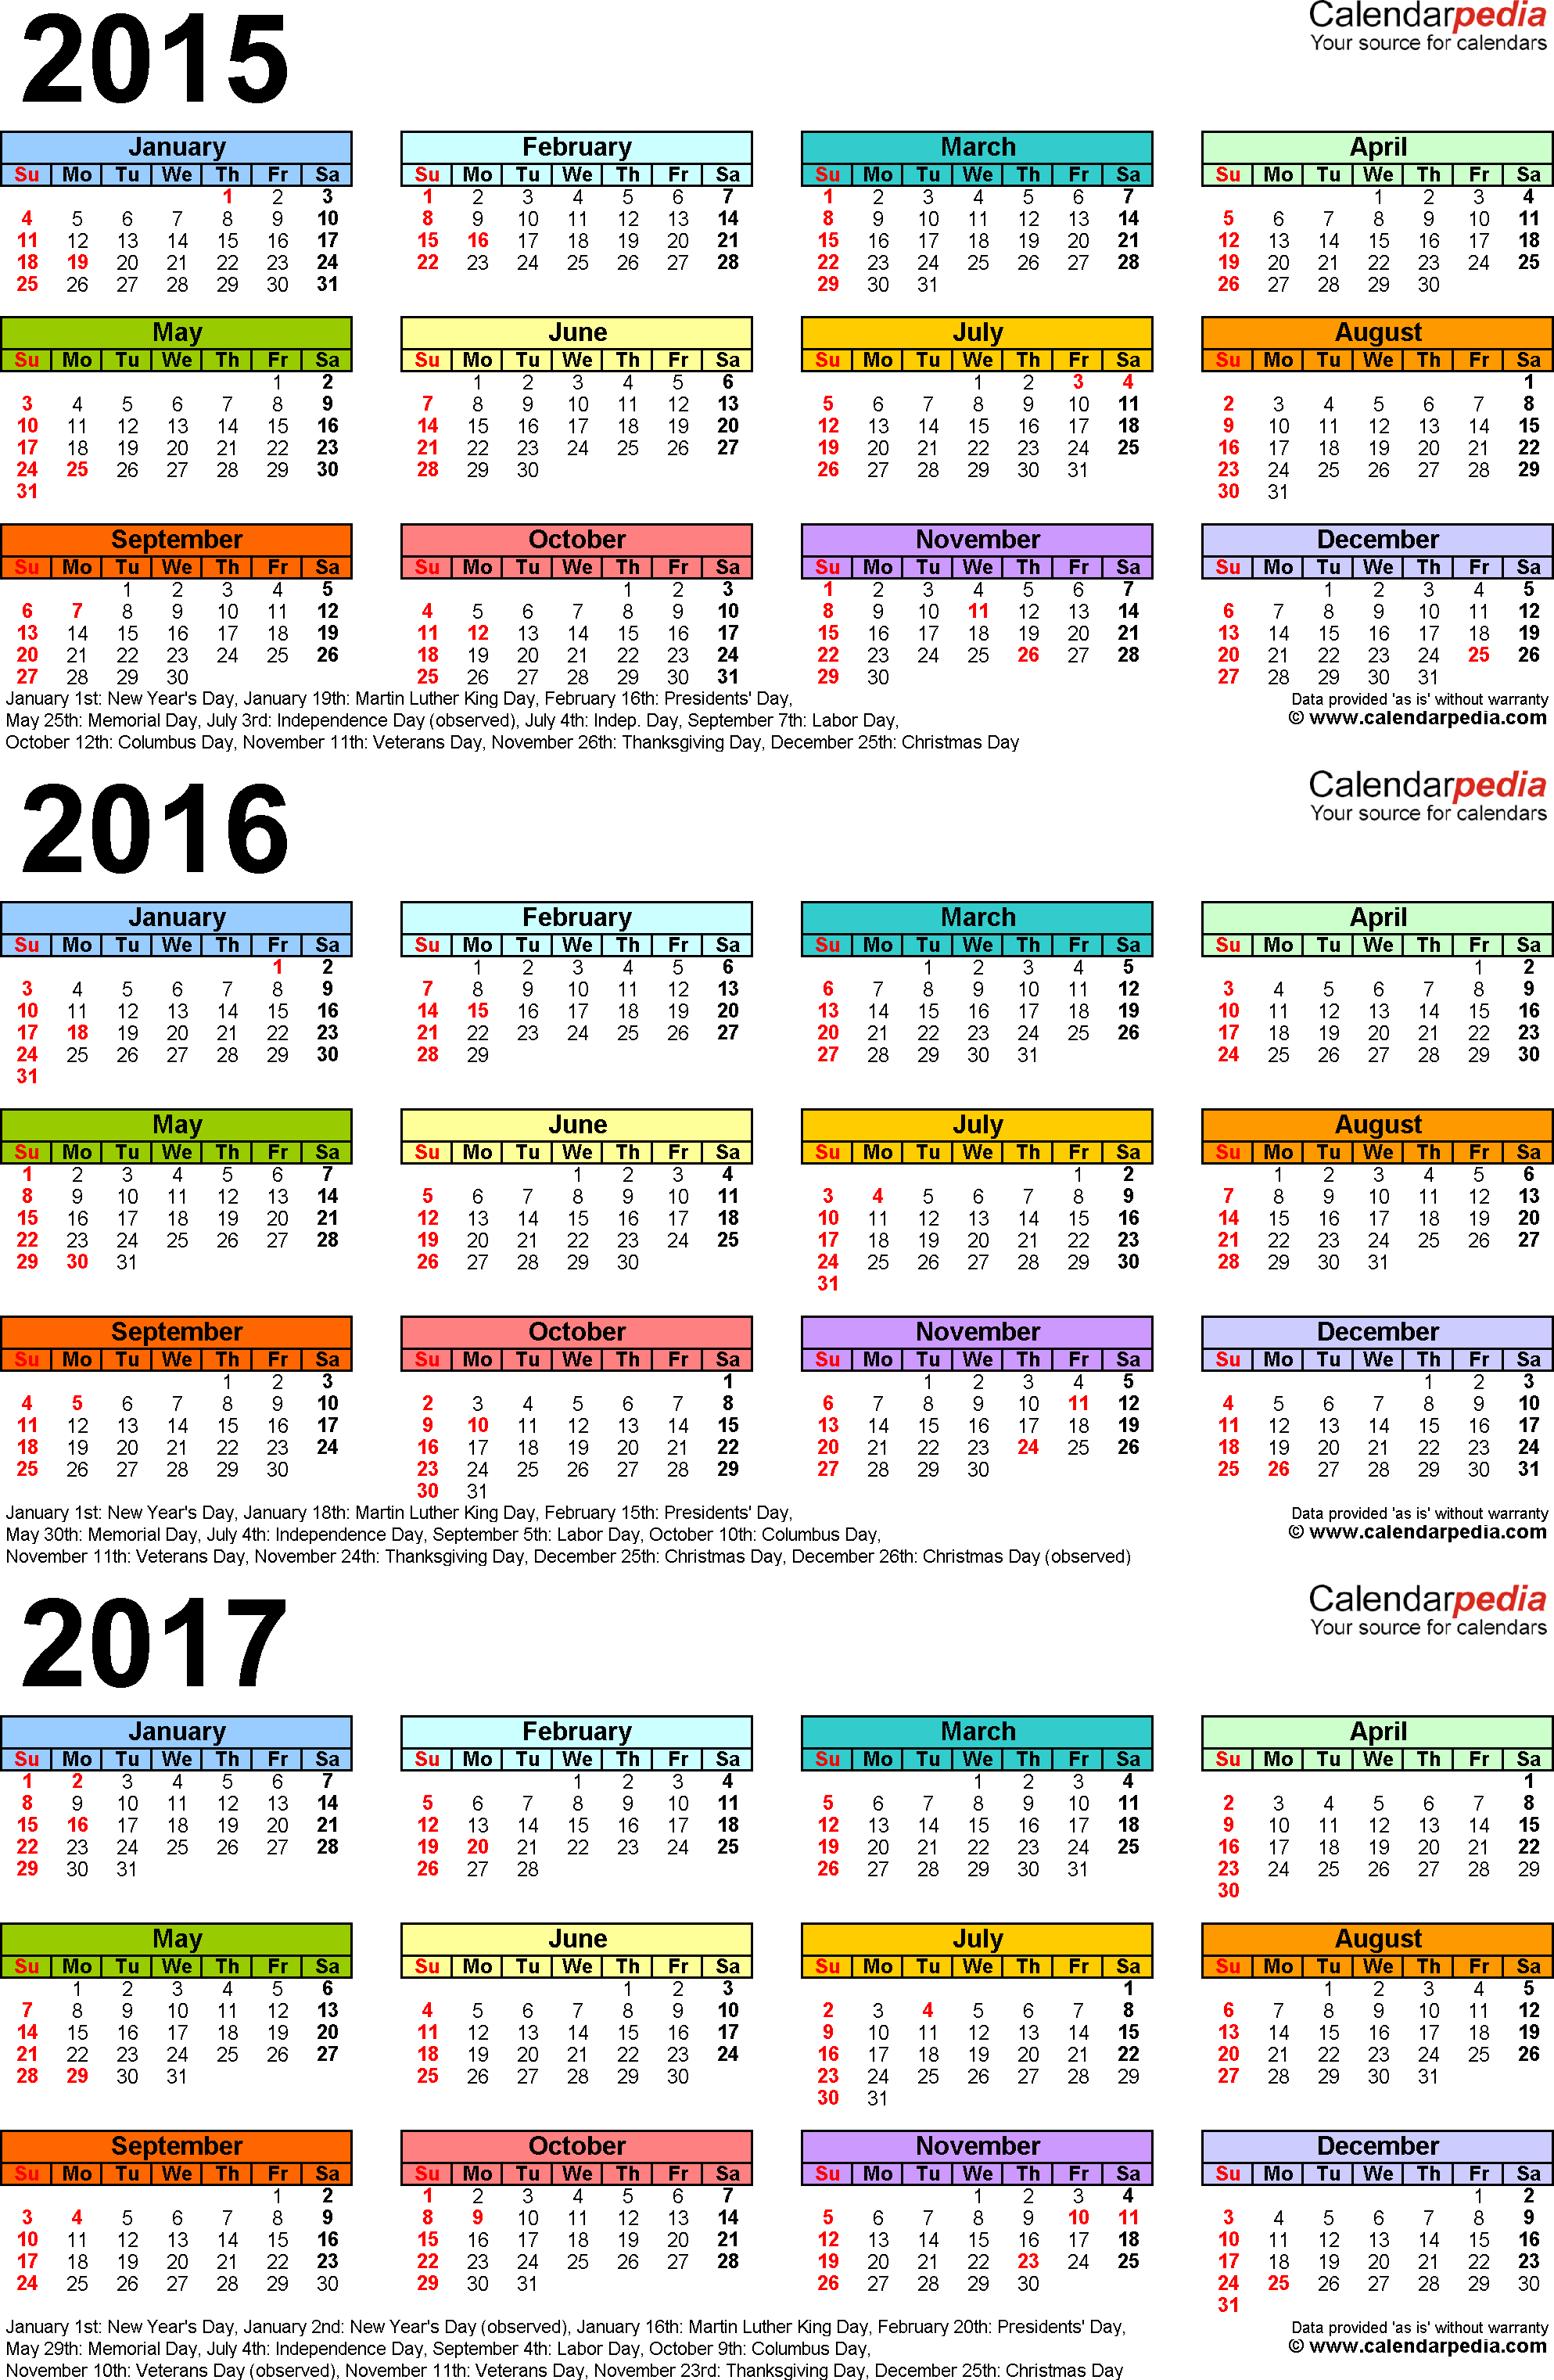 Template 3: PDF template for three year calendar 2015/2016/2017 (portrait orientation, 1 page, in color)